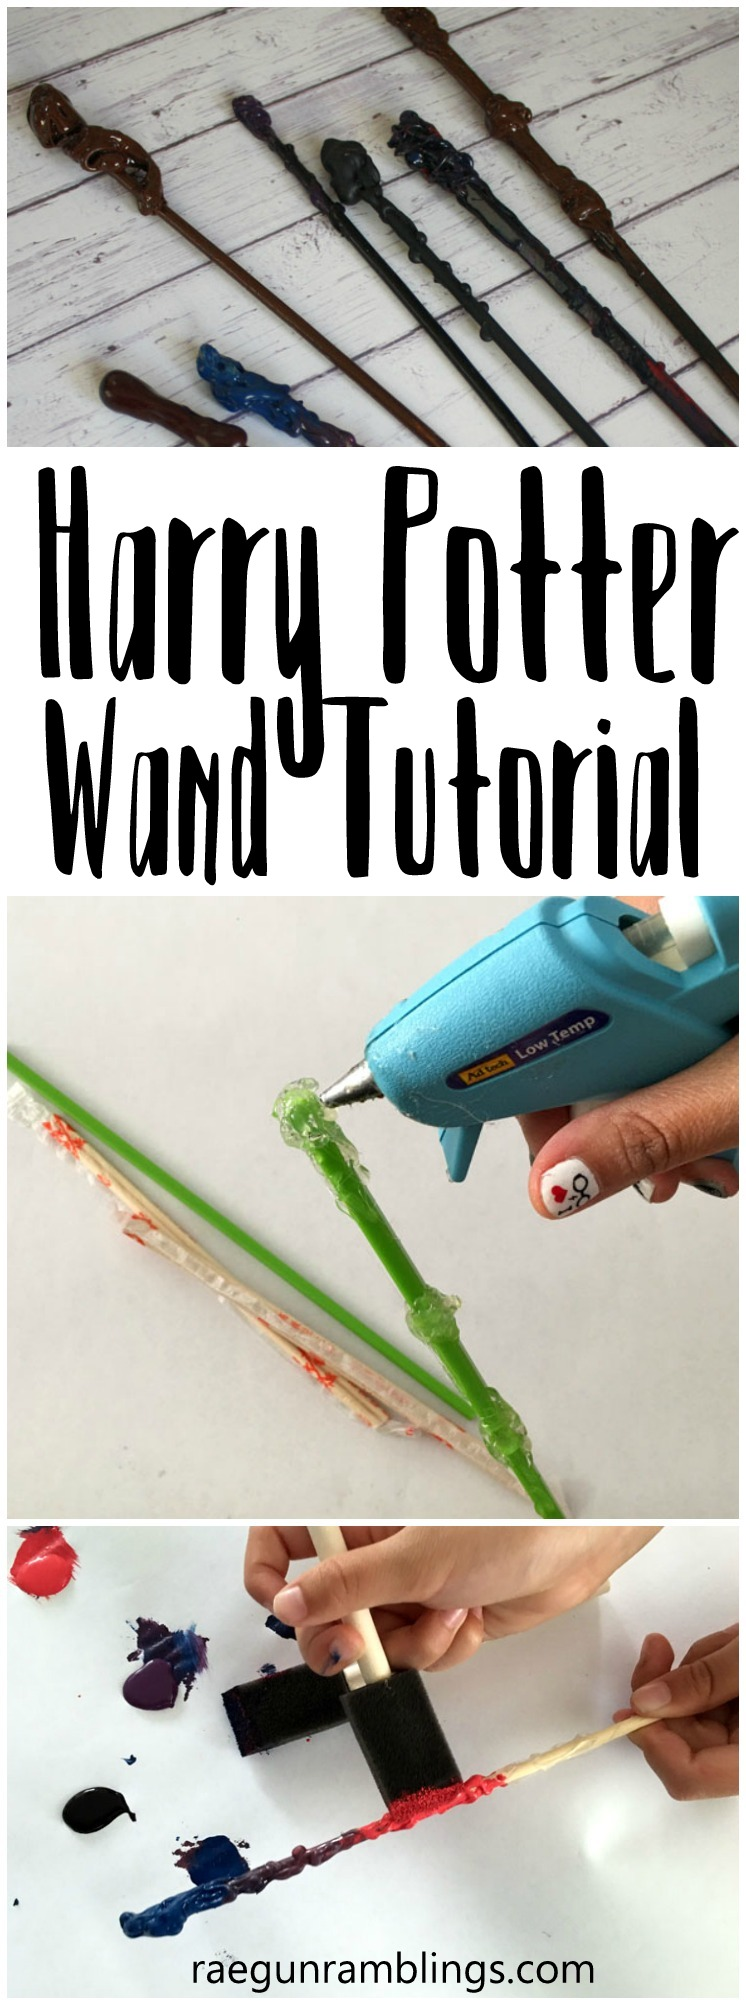 Hands down the best Harry Potter wand tutorial. Way better than the others I've tried. Fun kid activity or party idea.